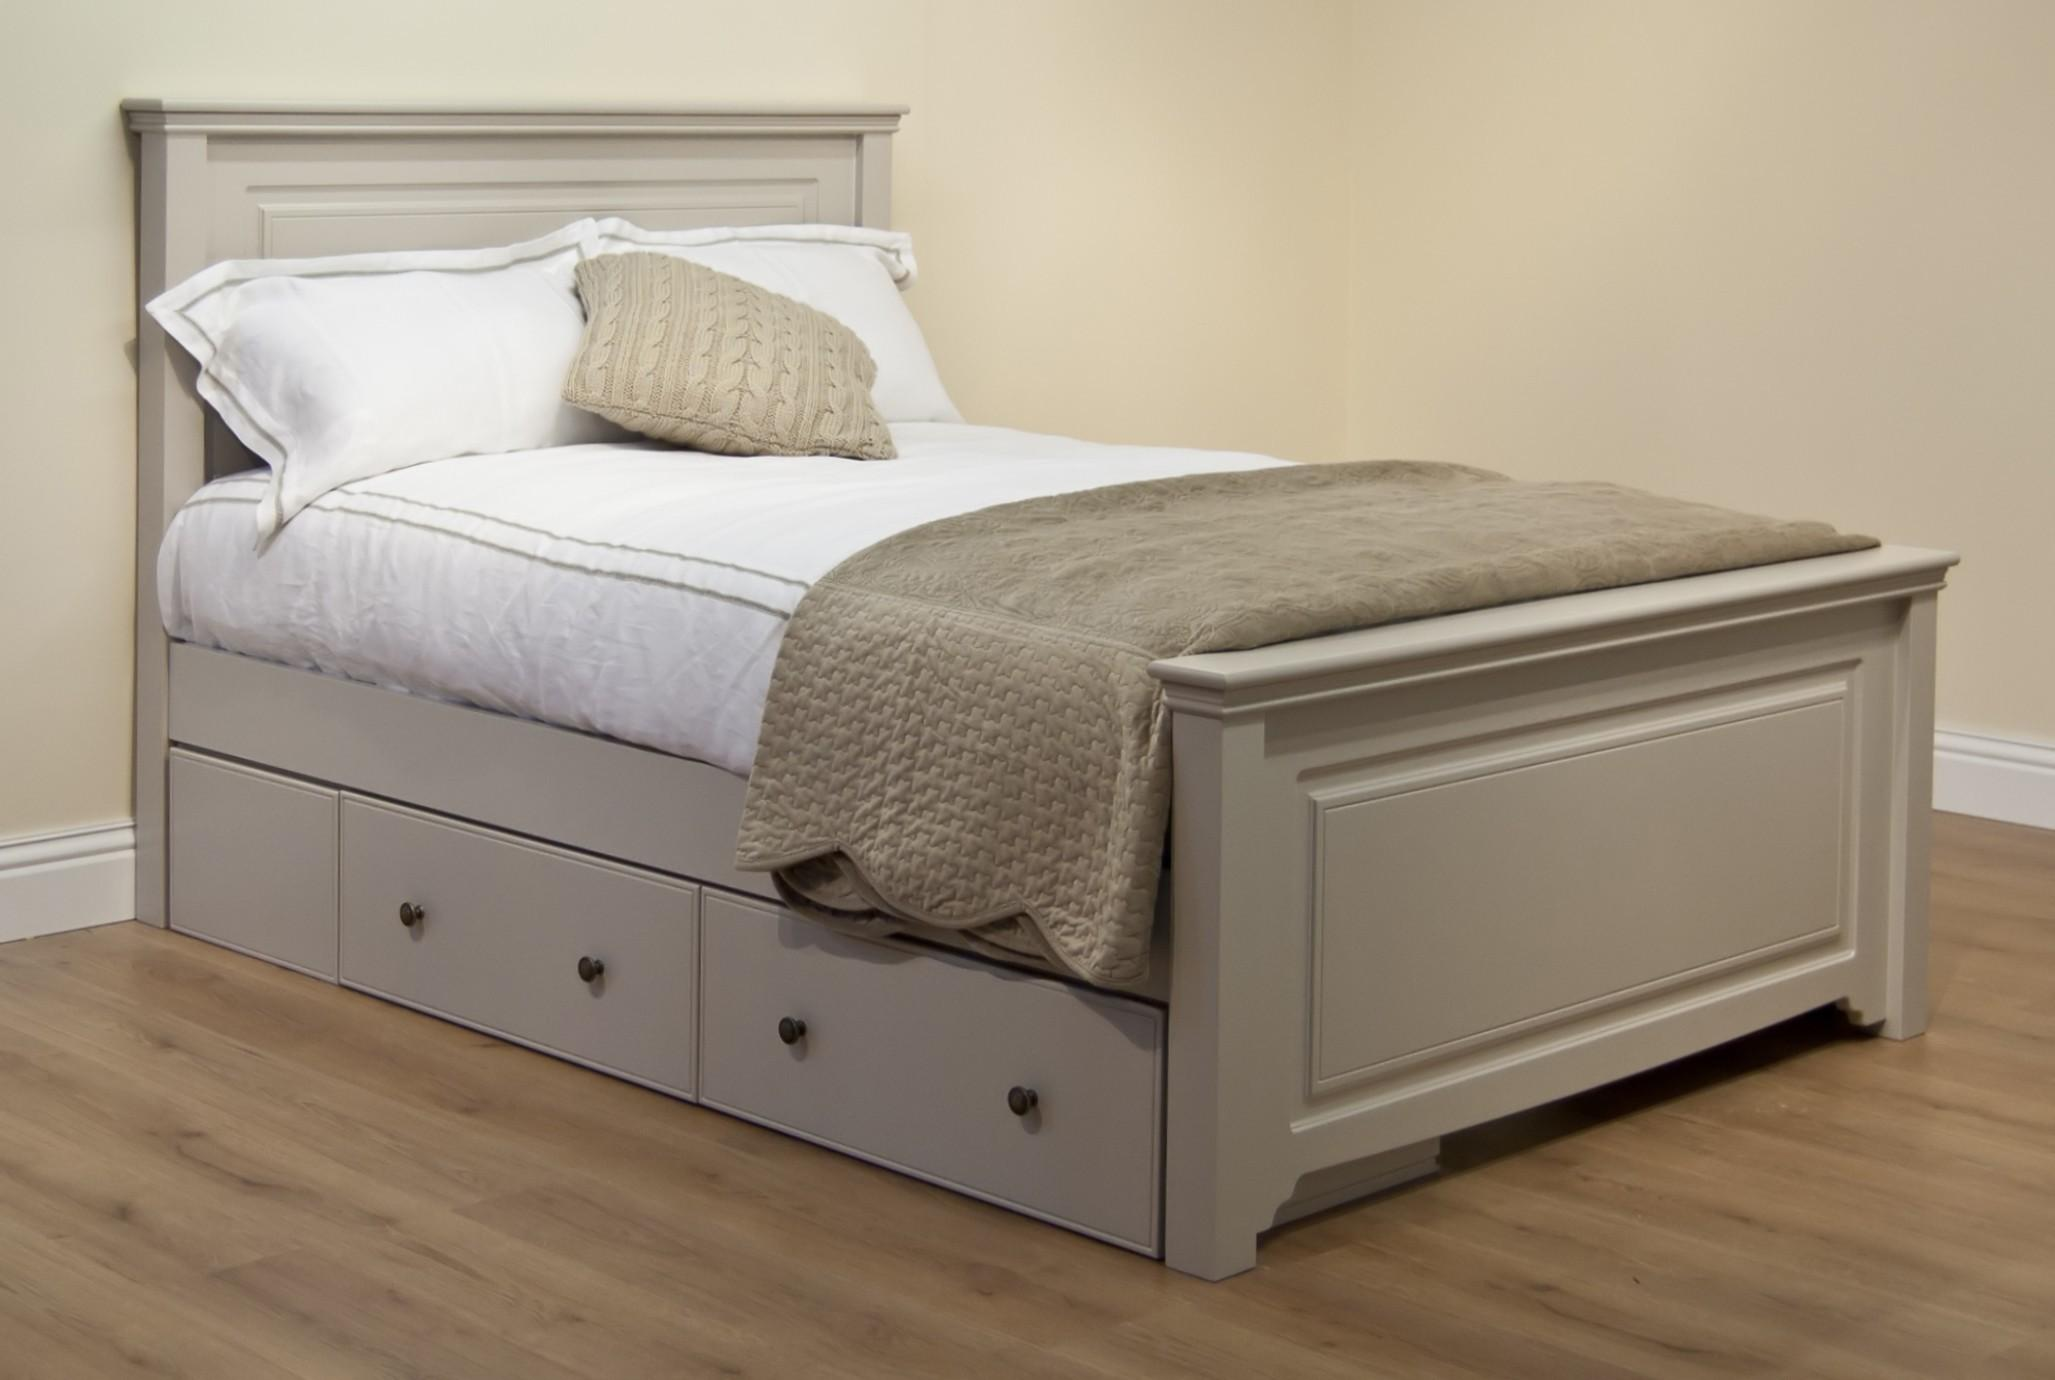 Storage Beds Double Faith Bed Grey